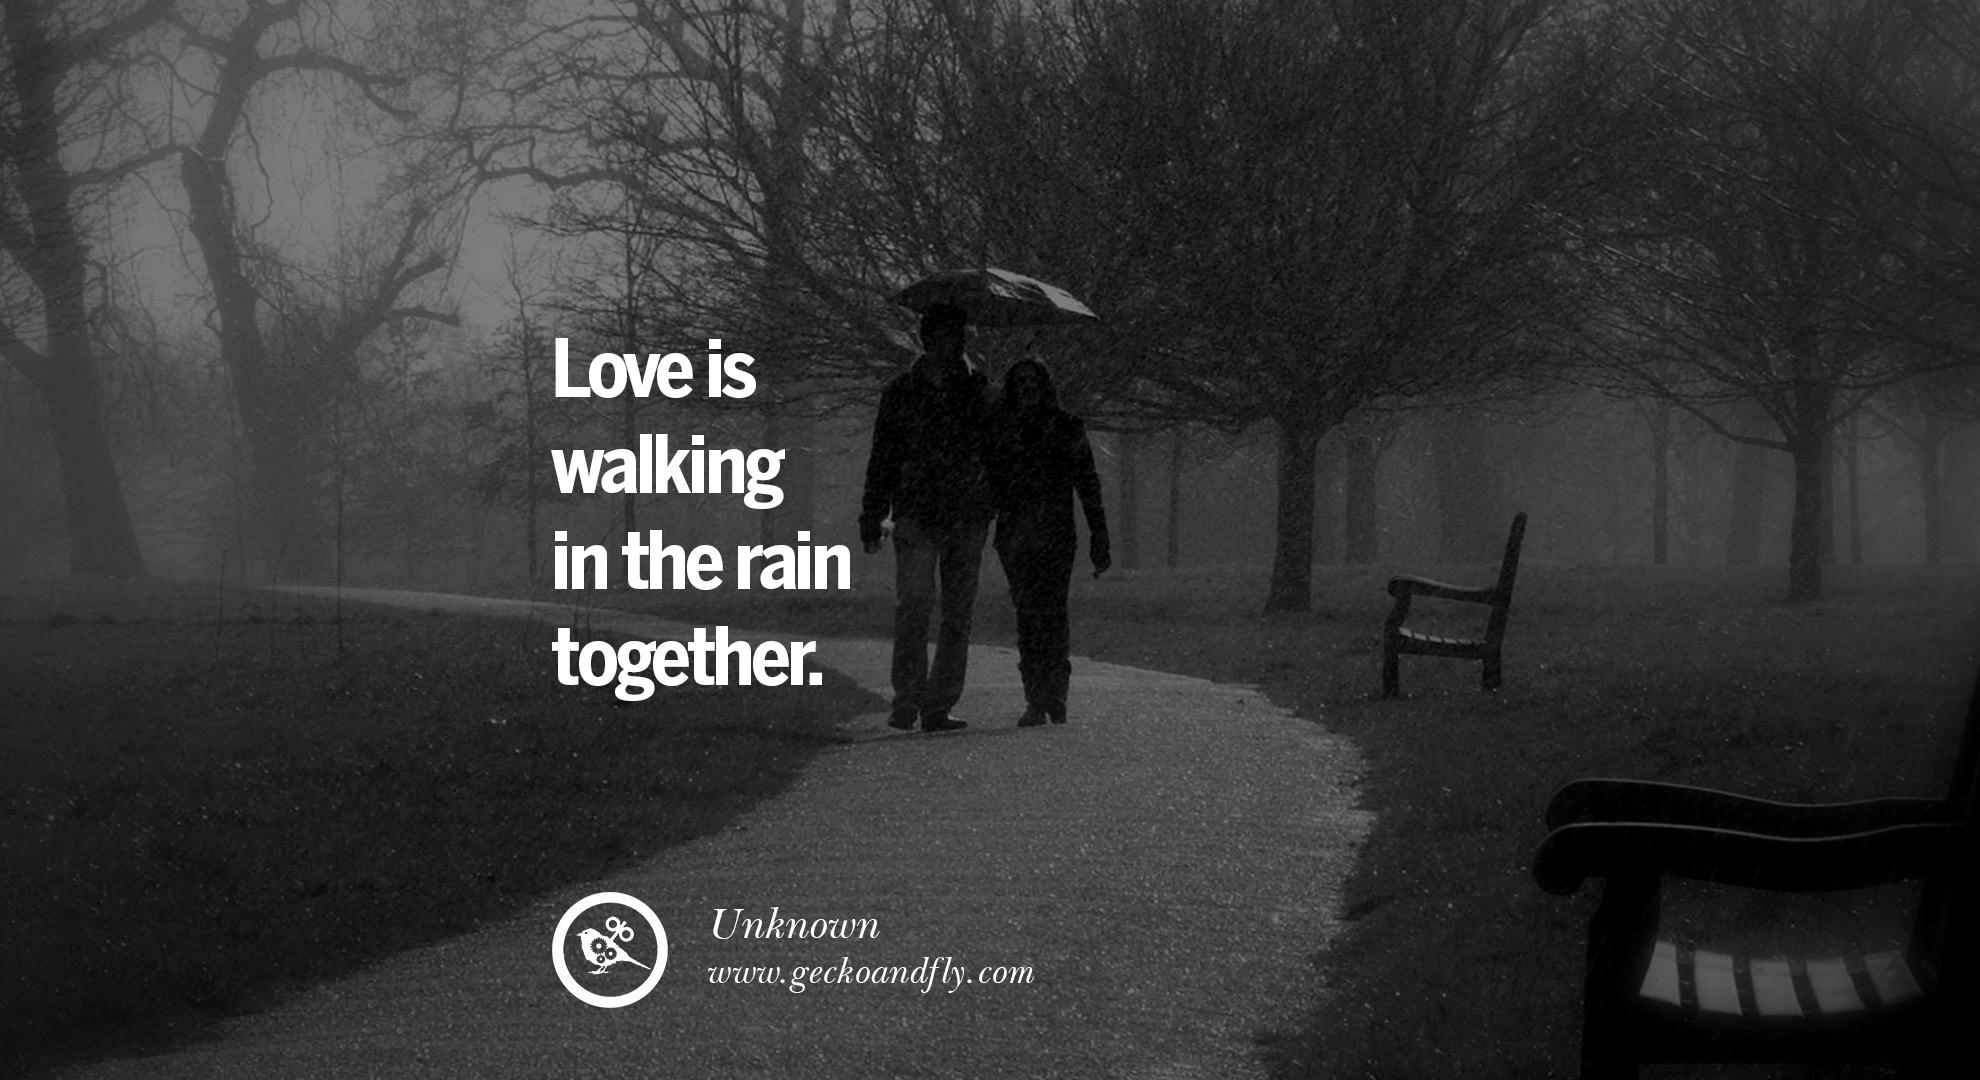 Lovingyou Quotes Together: 40 Romantic Quotes About Love Life, Marriage And Relationships